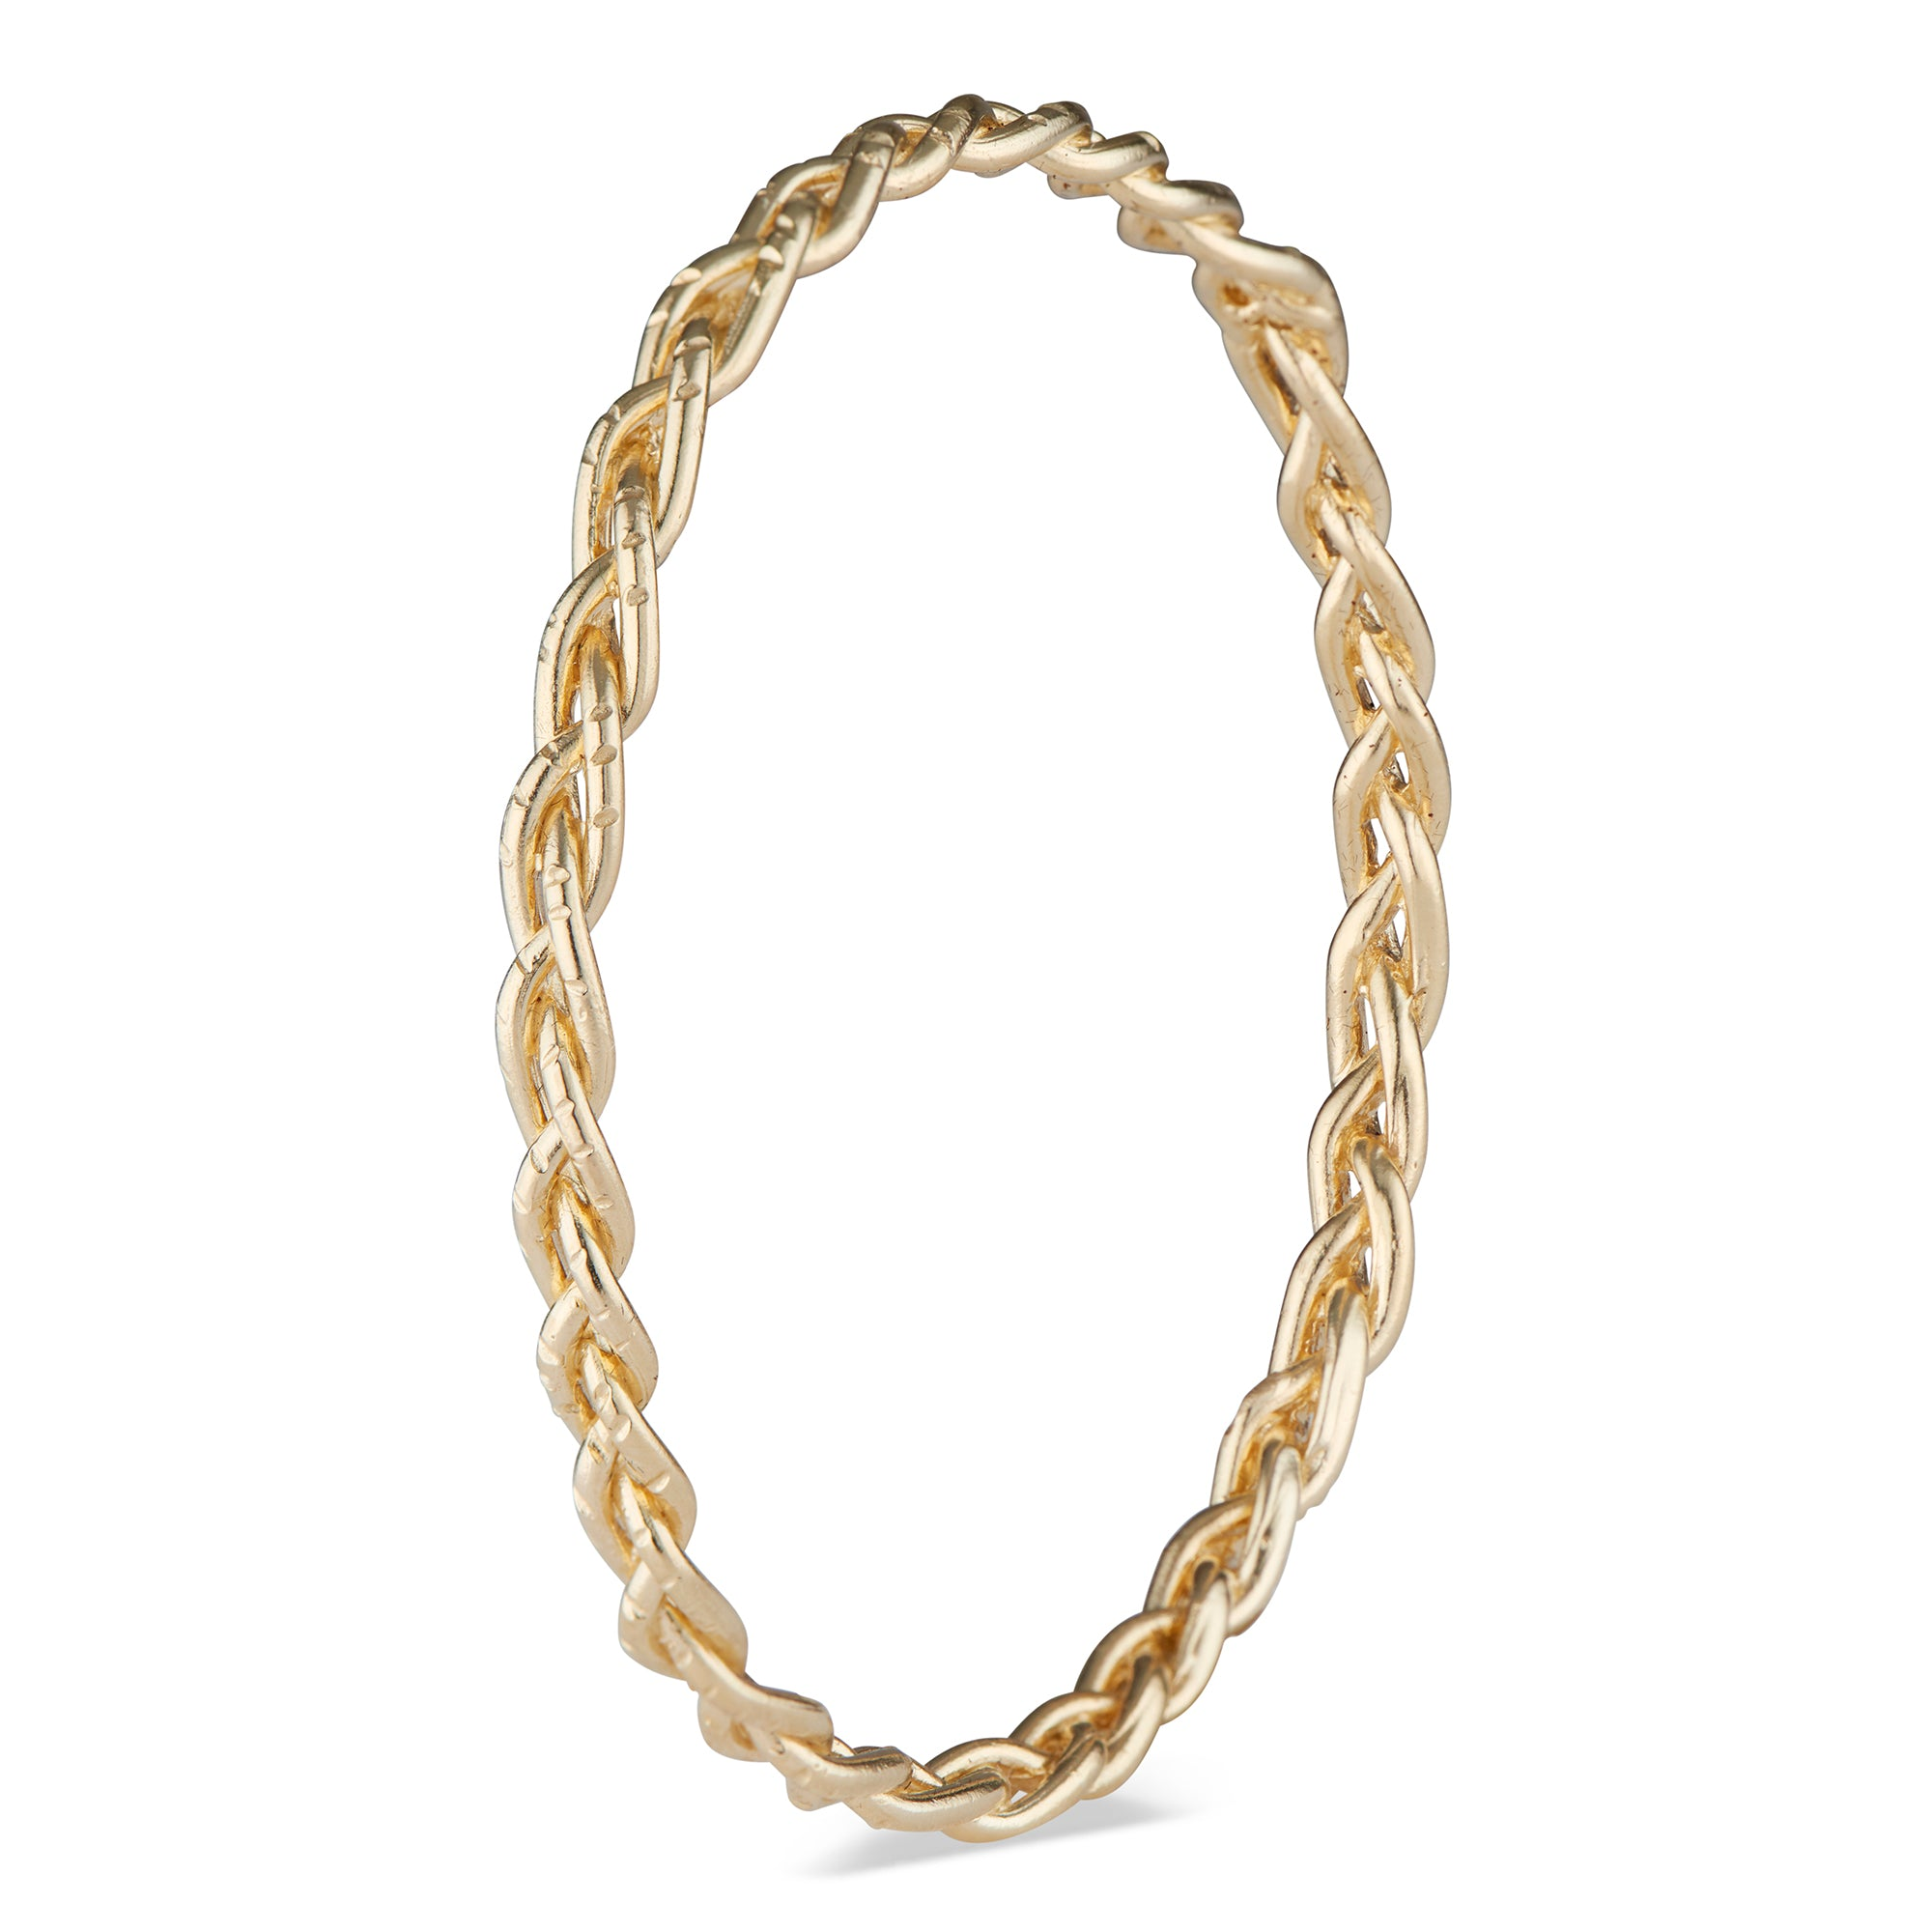 This 14k Gold braided bangle is a gorgeous piece to have on your wrist at all times. Slightly chunky, yet still understated and never heavy or uncomfortable. Goes beautifully with the Casandra Hoops and Taylor Ring!